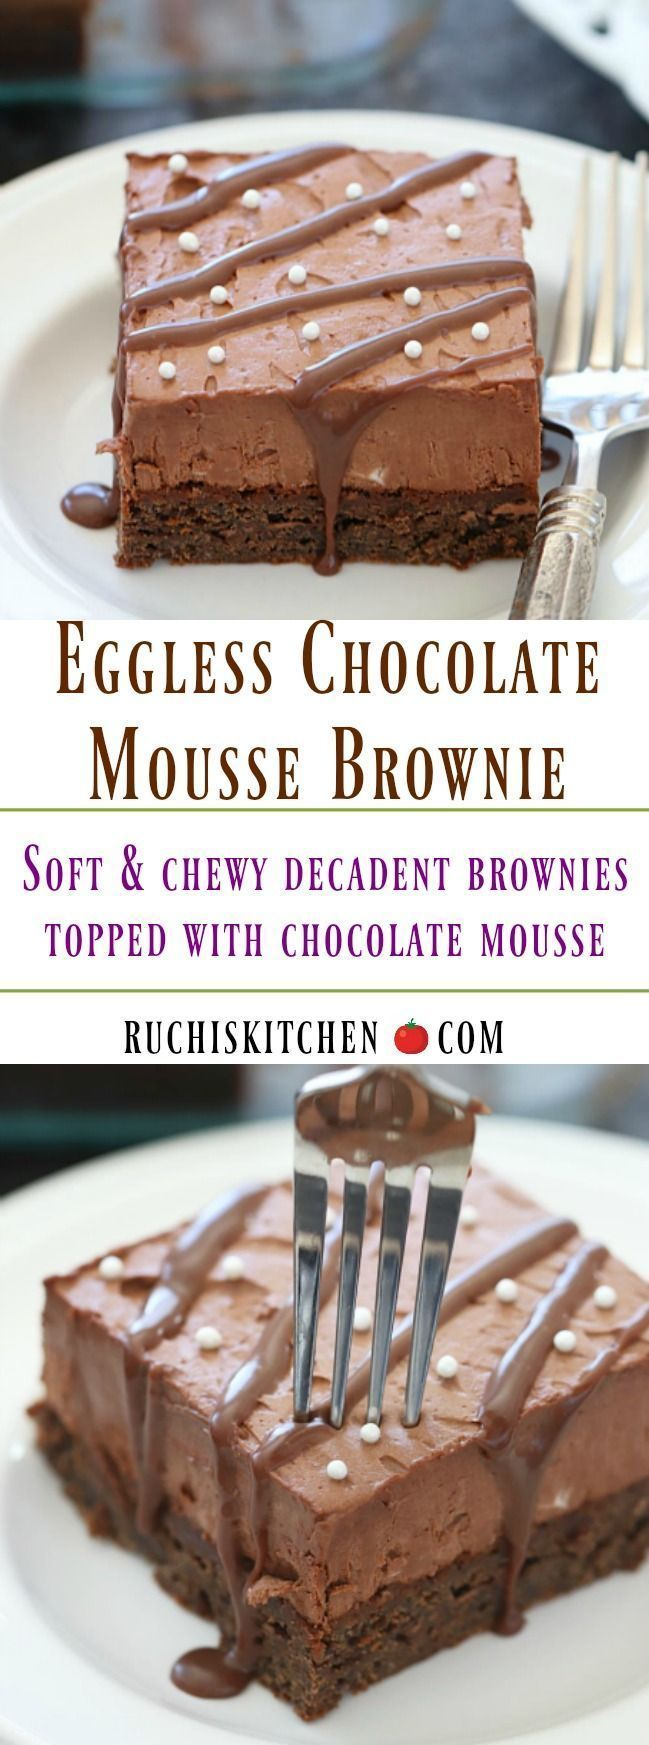 Do you have a sweet tooth or a ravenous appetite? Then these delicious Eggless Chocolate Mousse Brownie is the right choice for you! These creamy and moist brownies have an enticing appeal to them and they can draw even the most rigid dieters intotheir grasps! #brownie #sweettooth #dessert #Yummy #delicious #chocolate